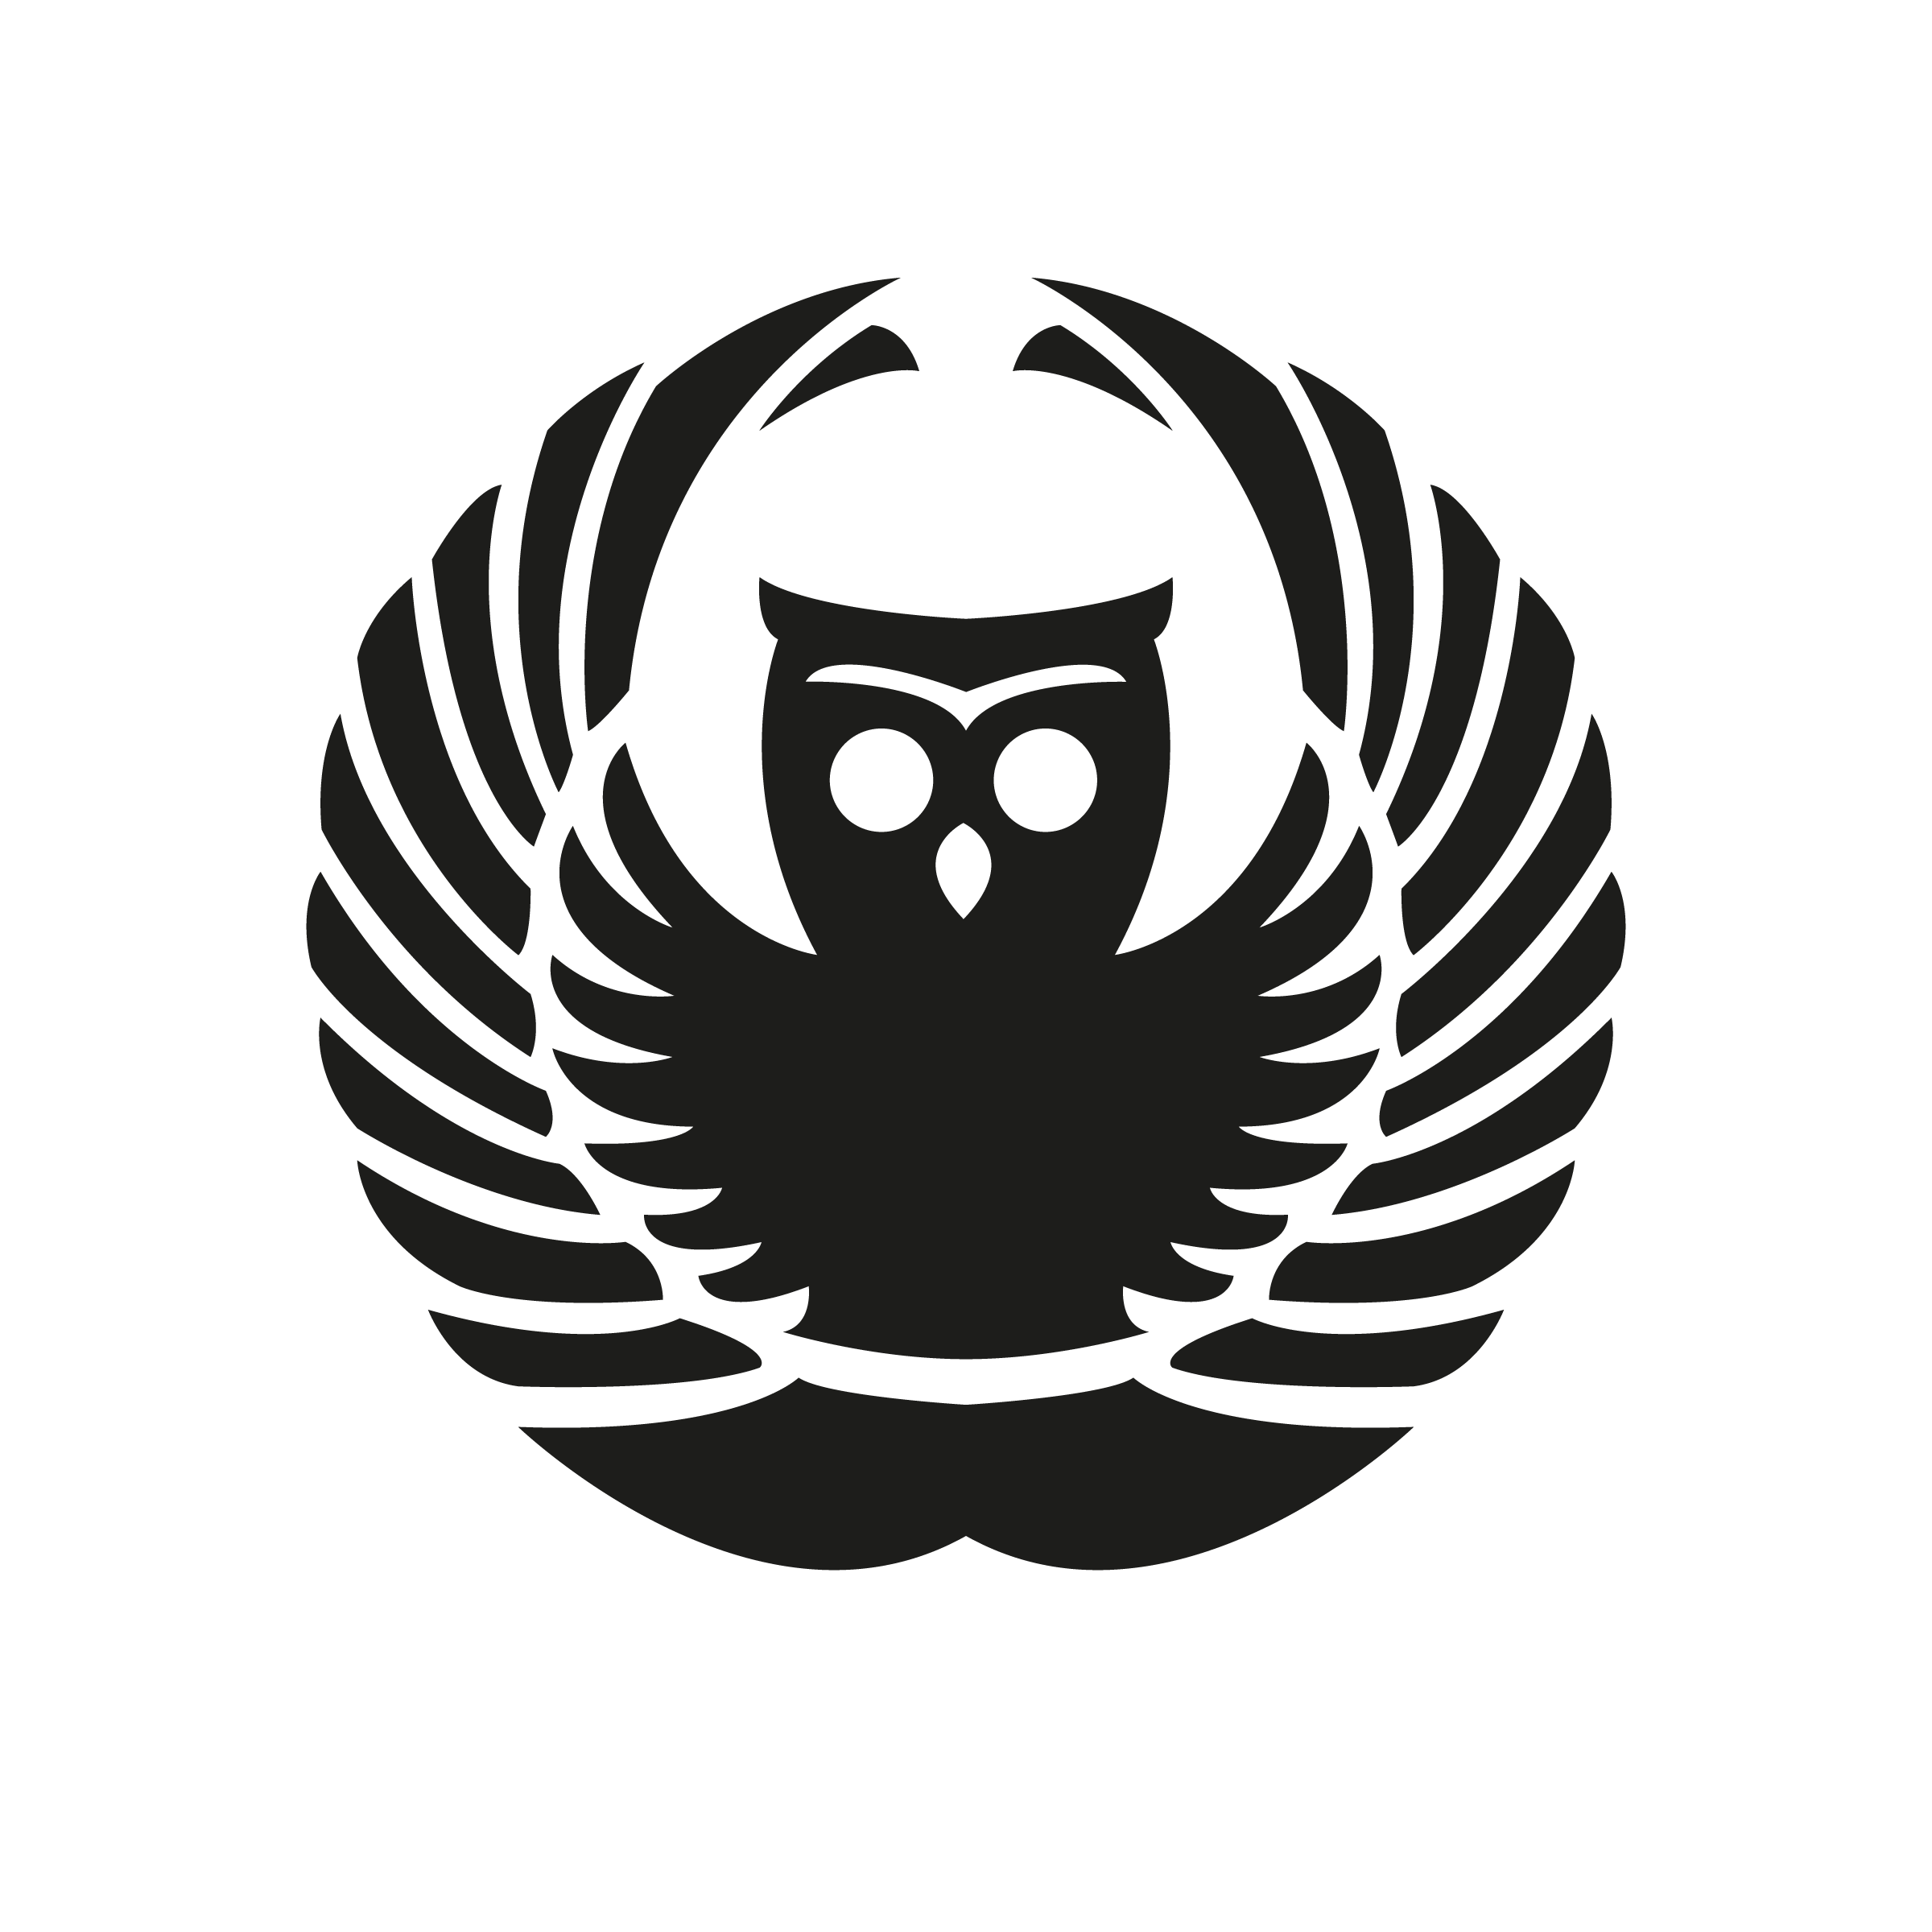 coin_owl.png